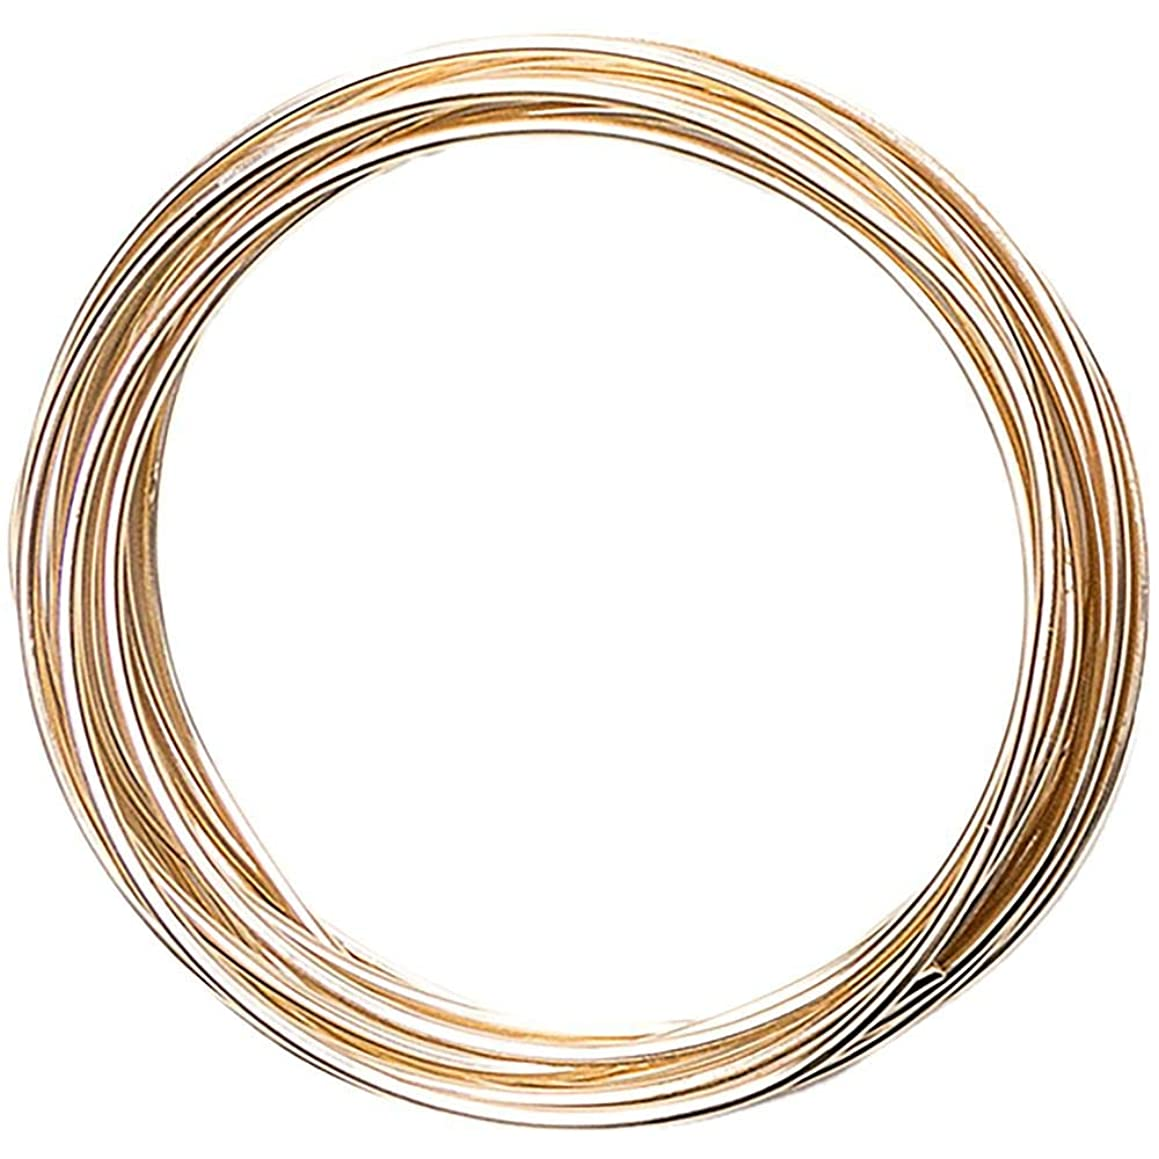 We R Memory Keepers 662912 Wire Accessory, Gold